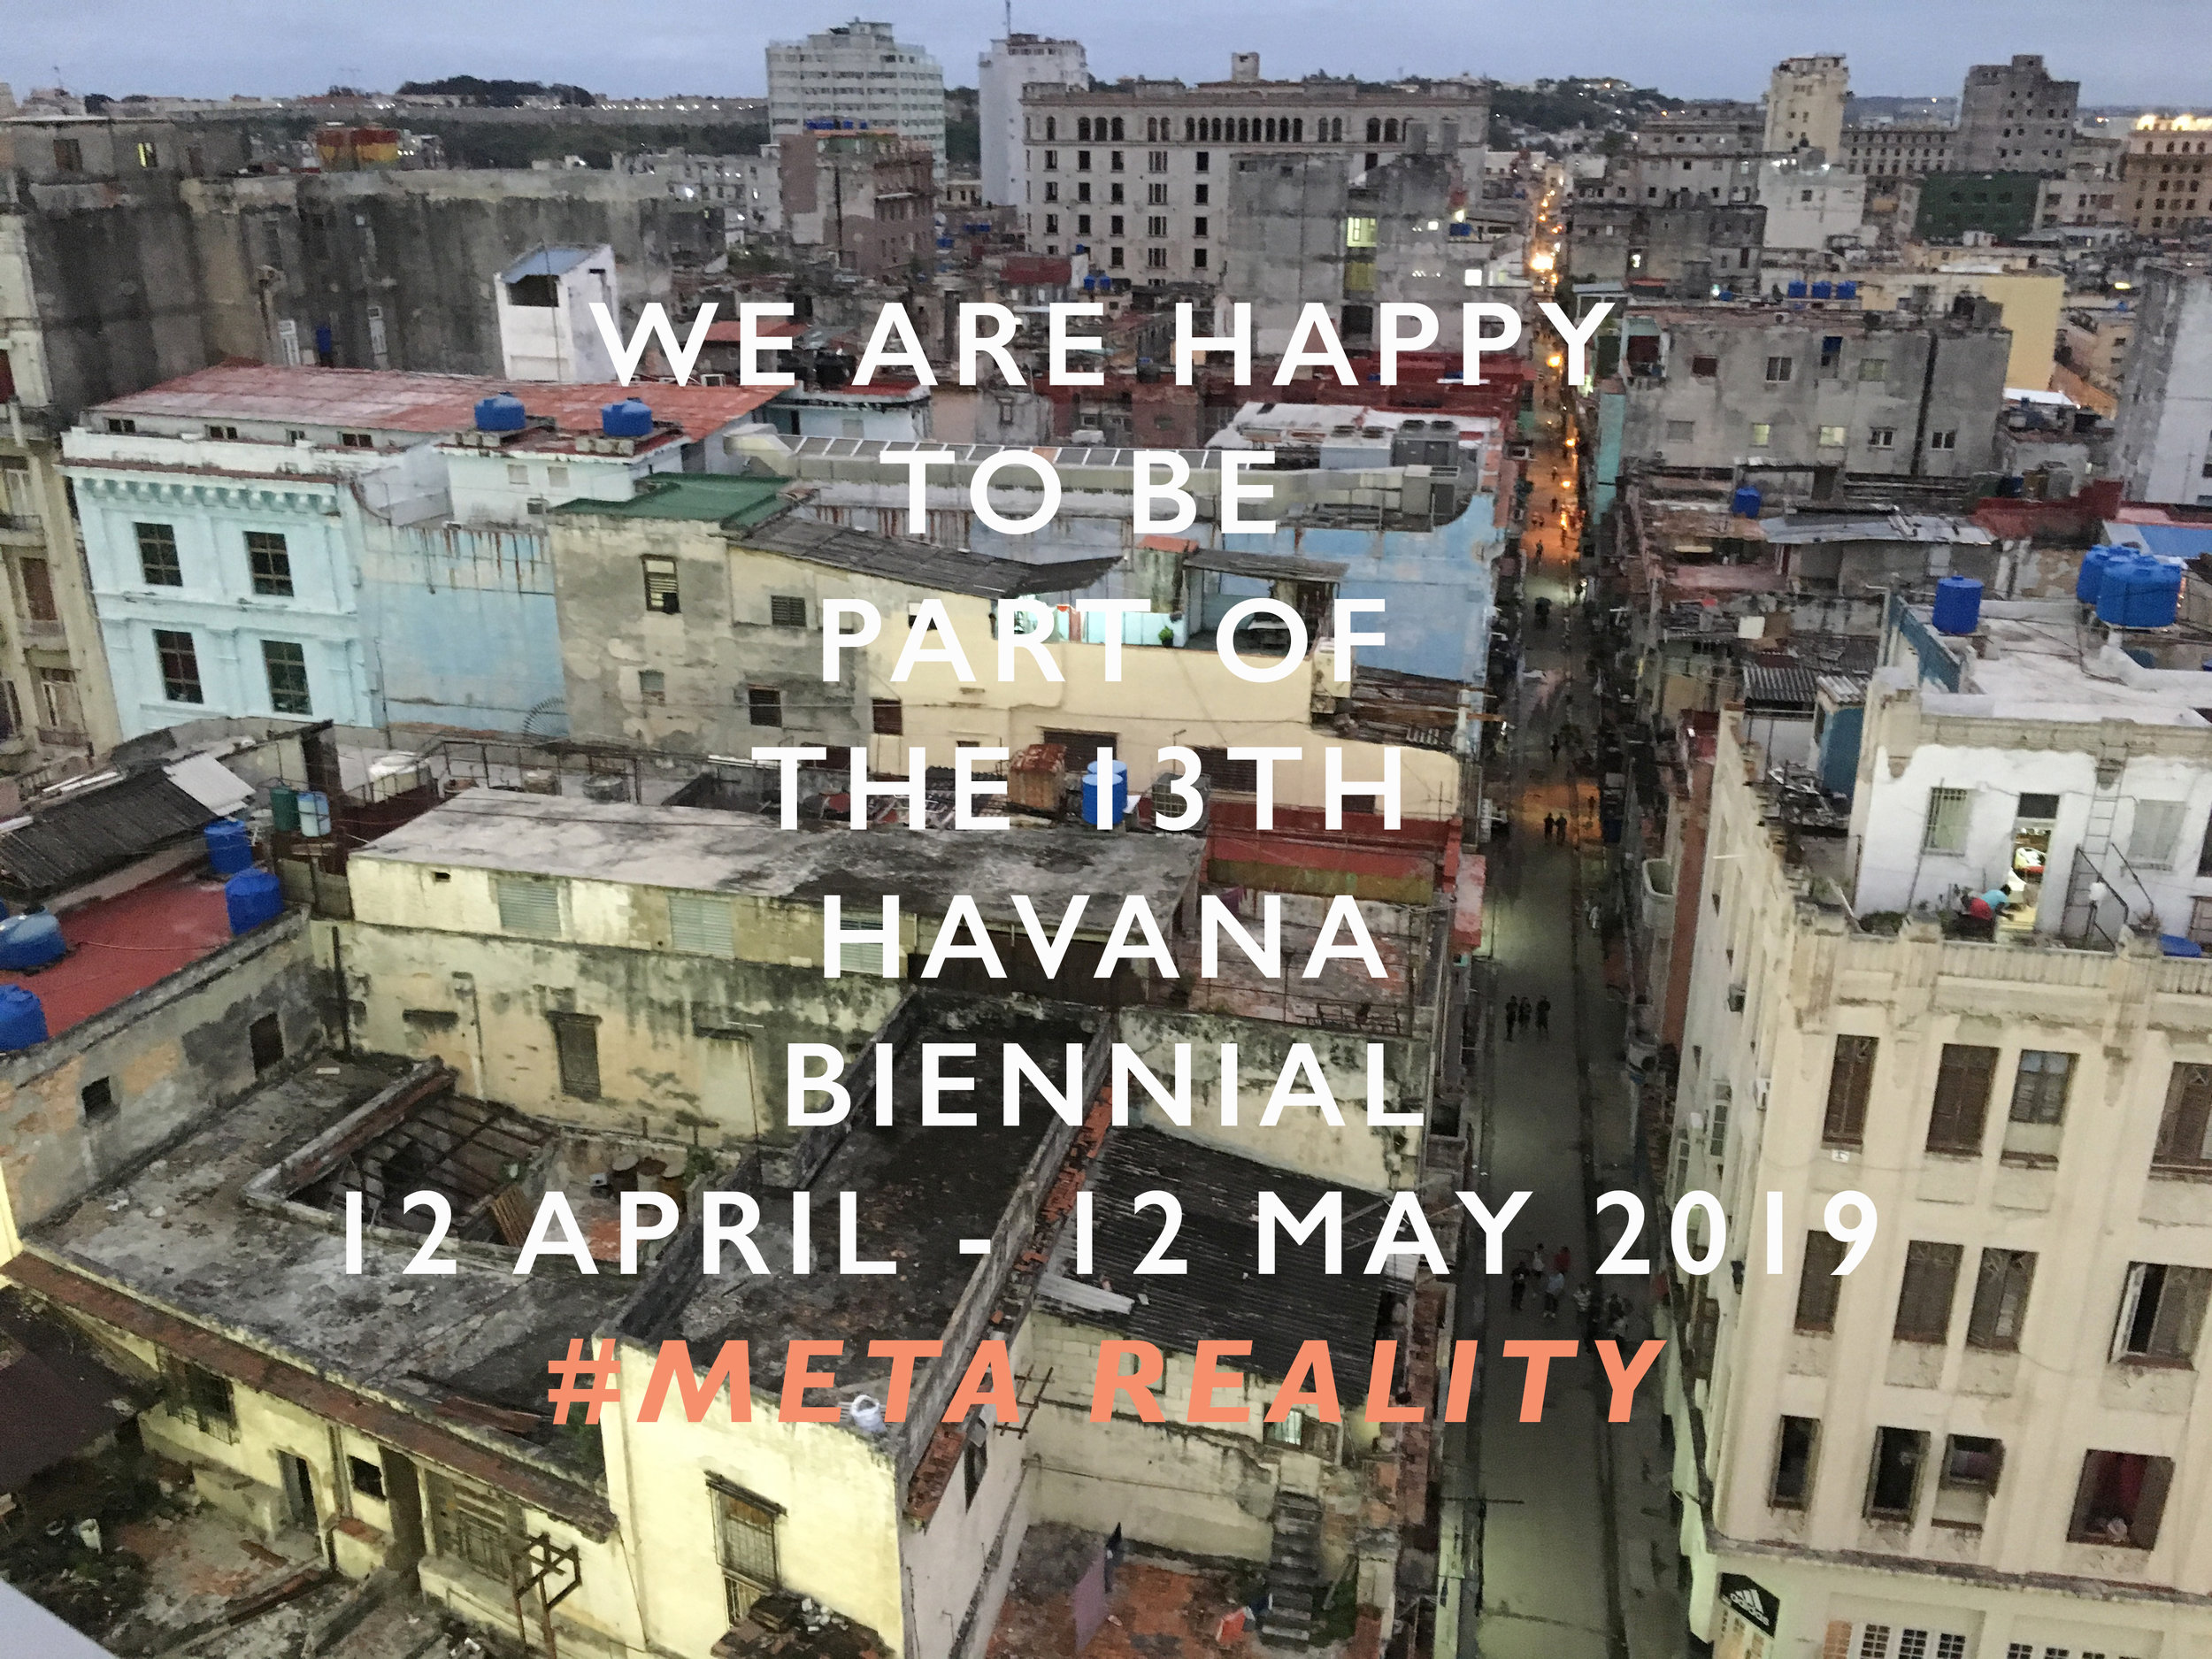 Havana Biennial 12 April - 12 May 2019